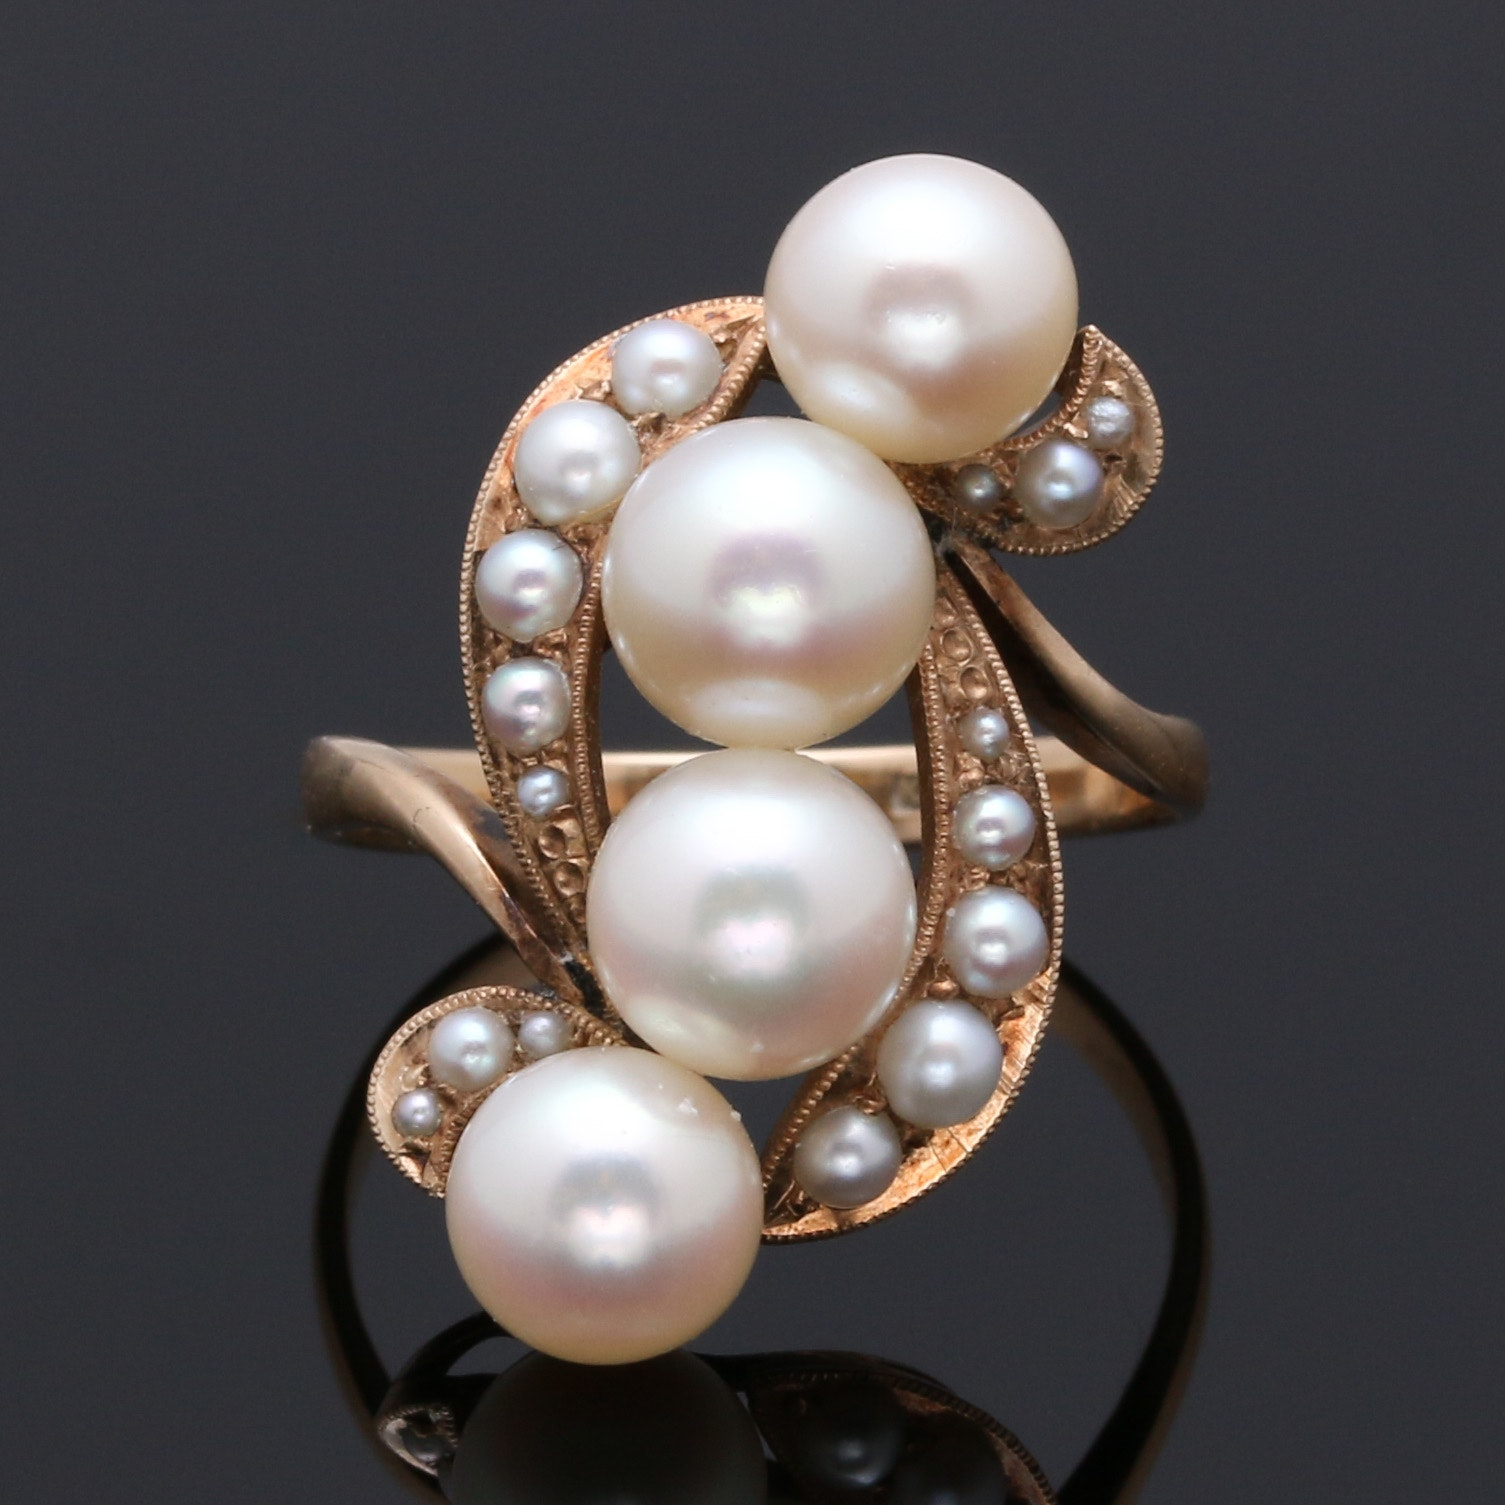 14K Yellow Gold and Cultured Pearl Ring